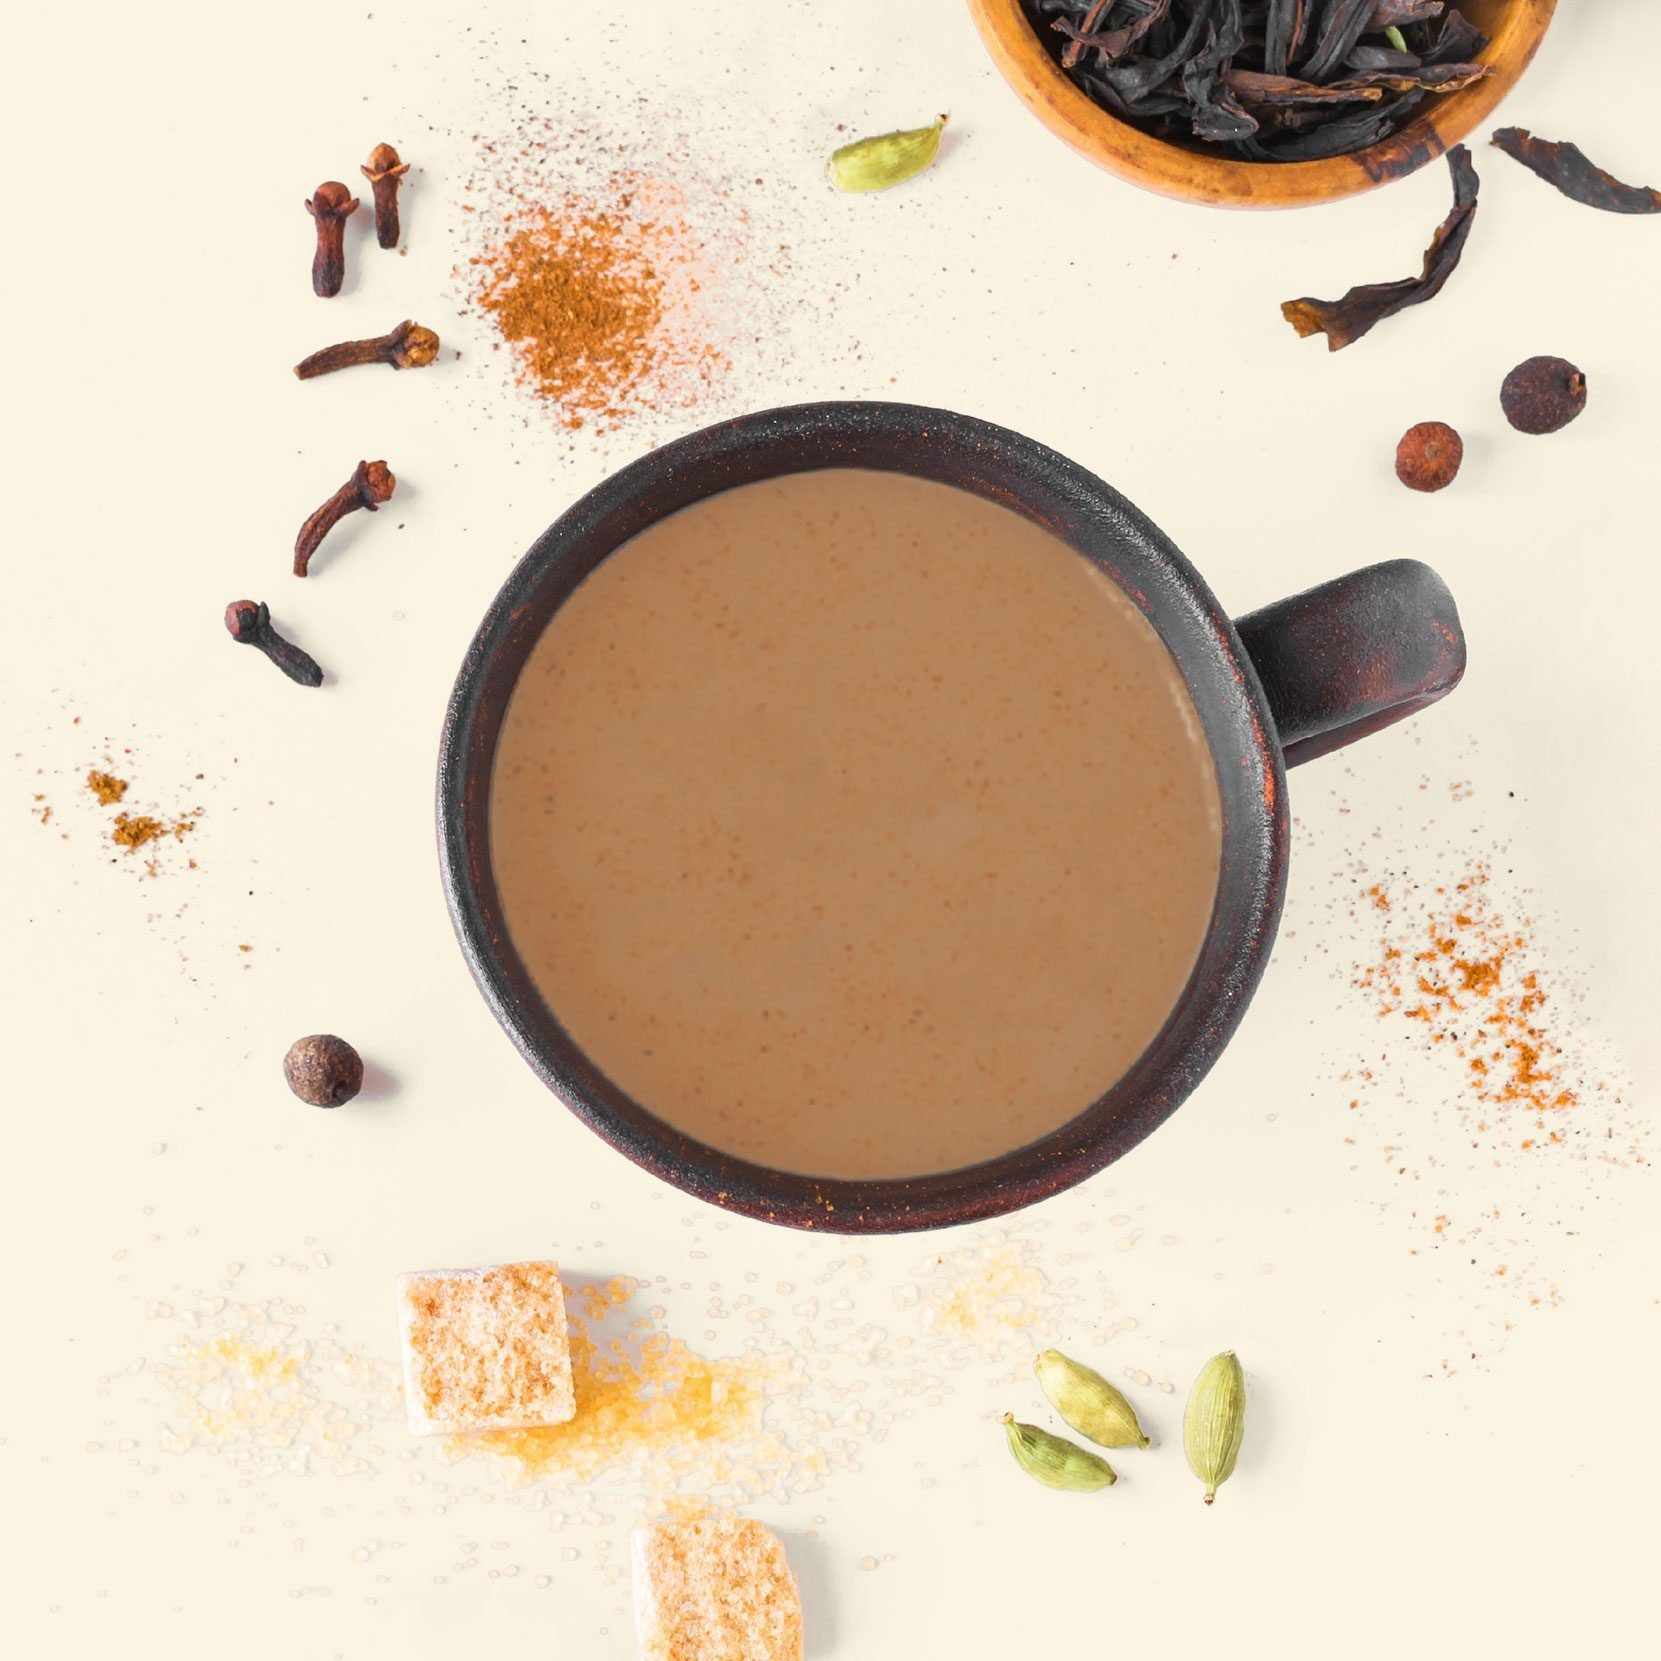 cup of chai tea from overhead with sugar and other ingredients scattered around the mug